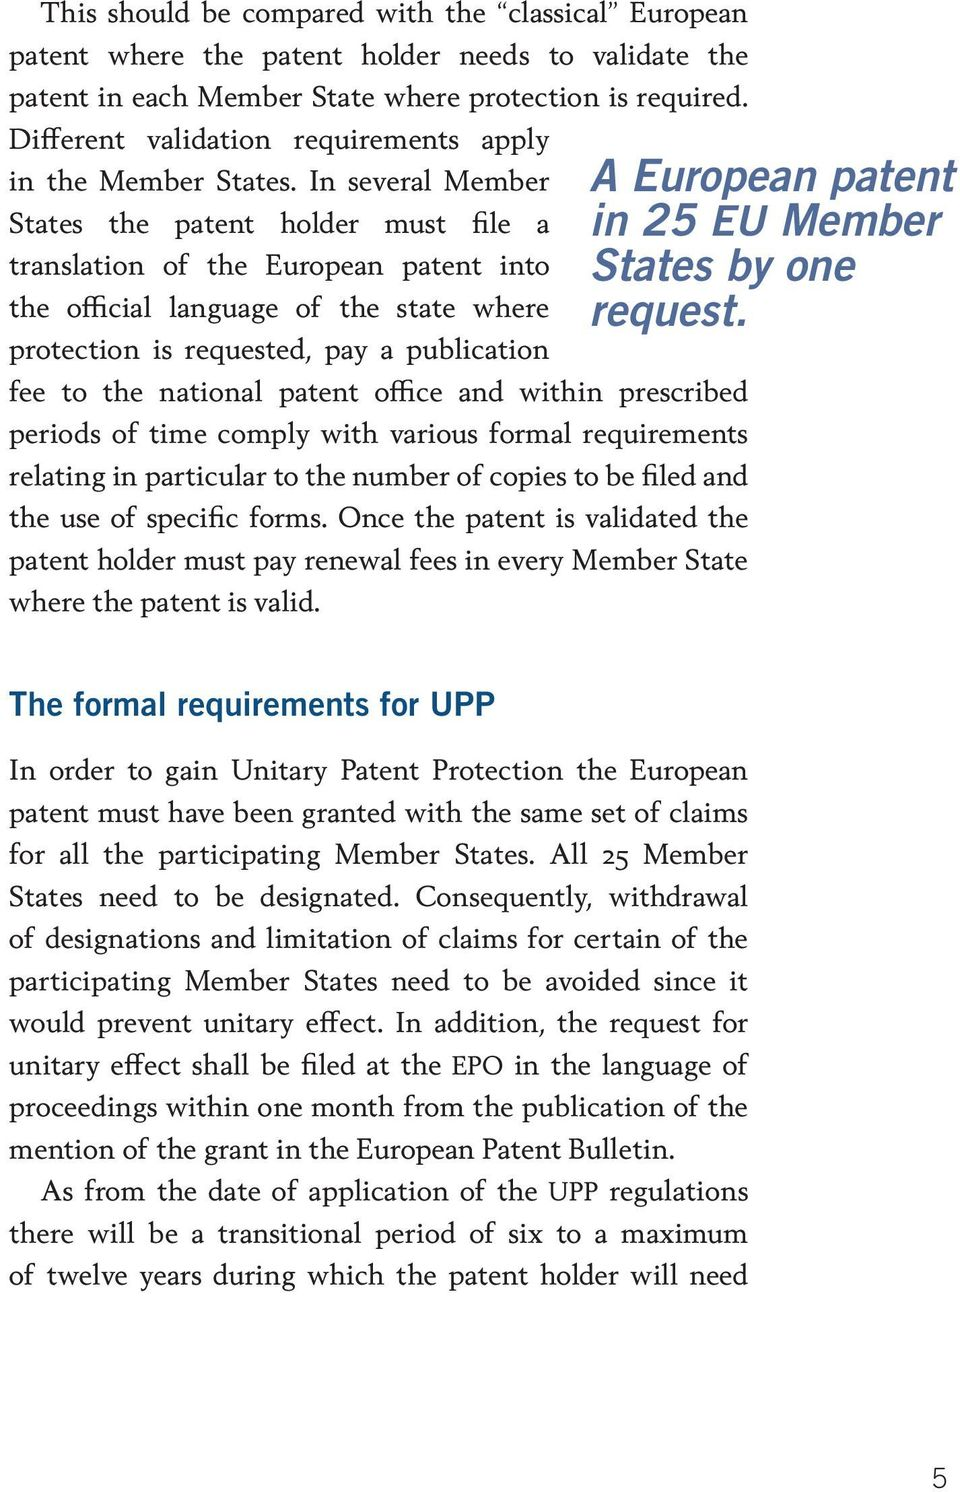 In several Member States the patent holder must file a translation of the European patent into the official language of the state where protection is requested, pay a publication fee to the national